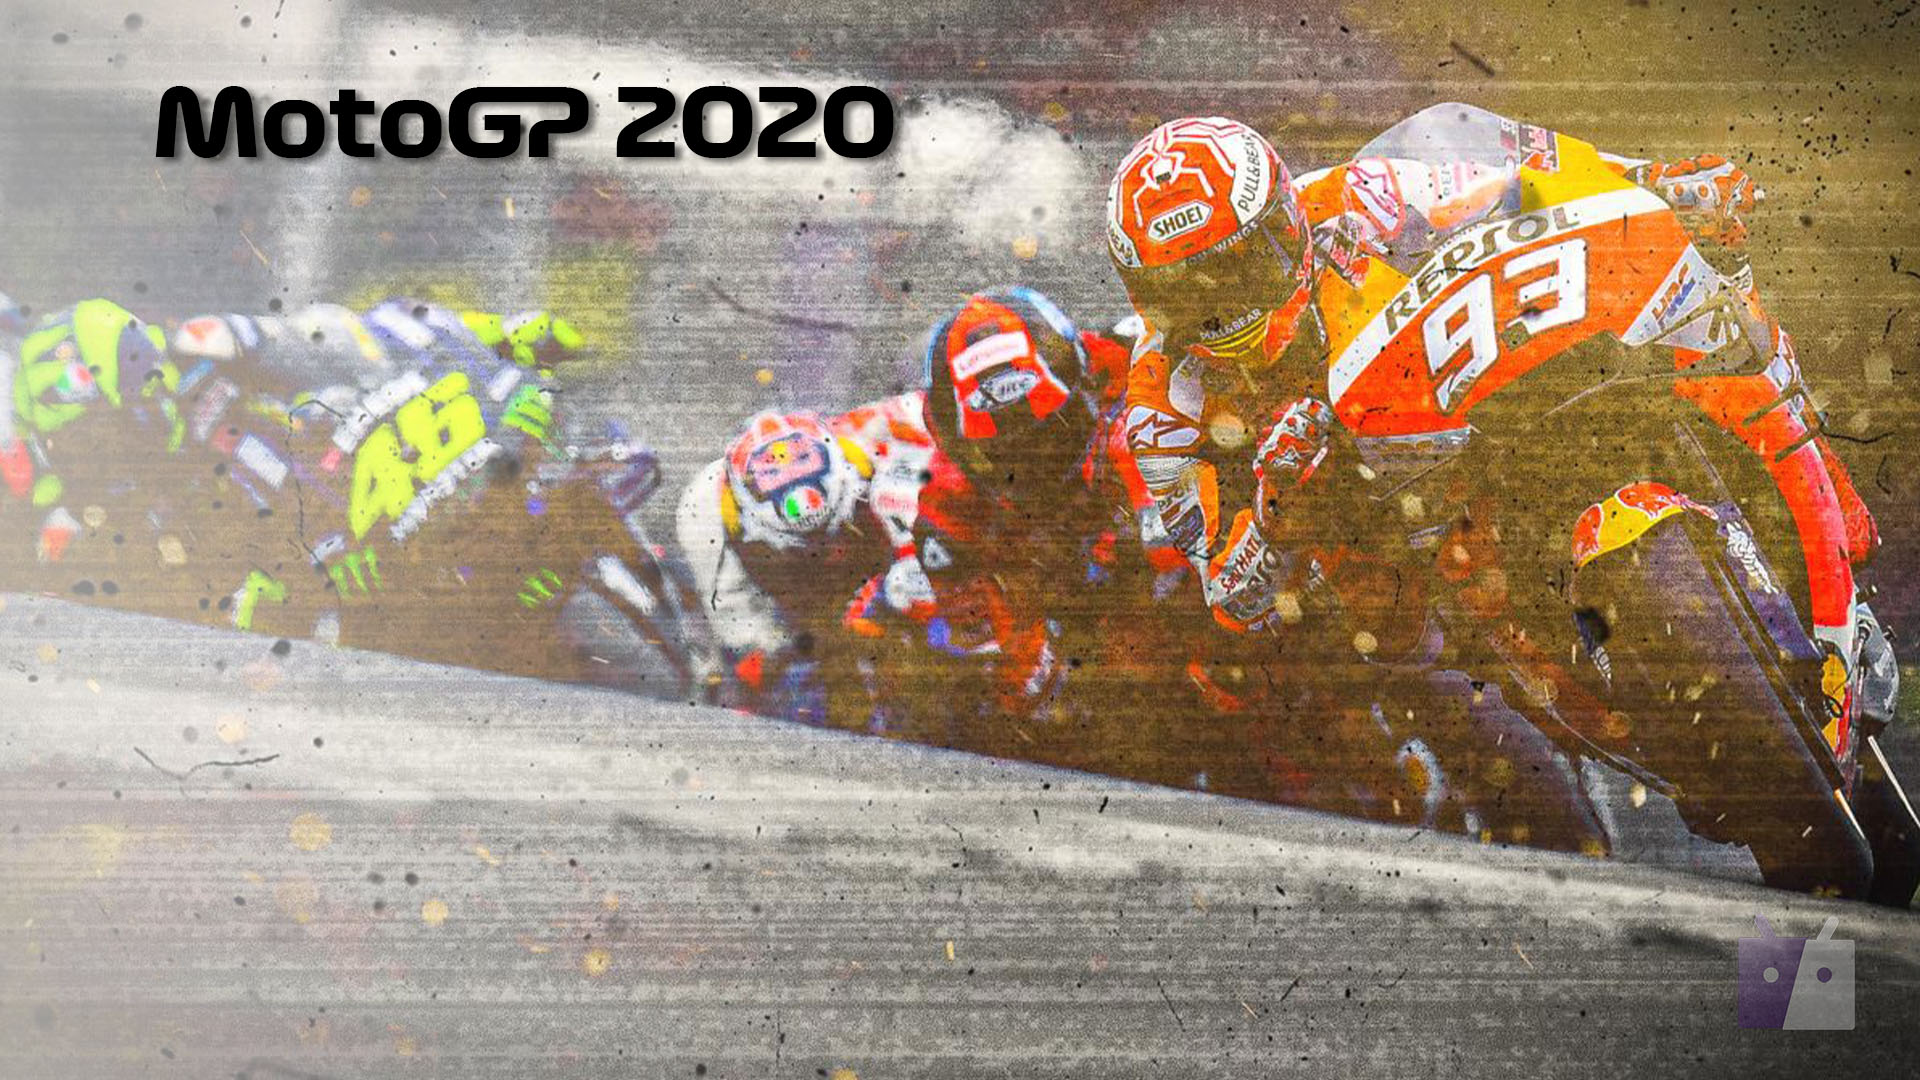 Come vedere la MotoGP 2020 in TV e streaming